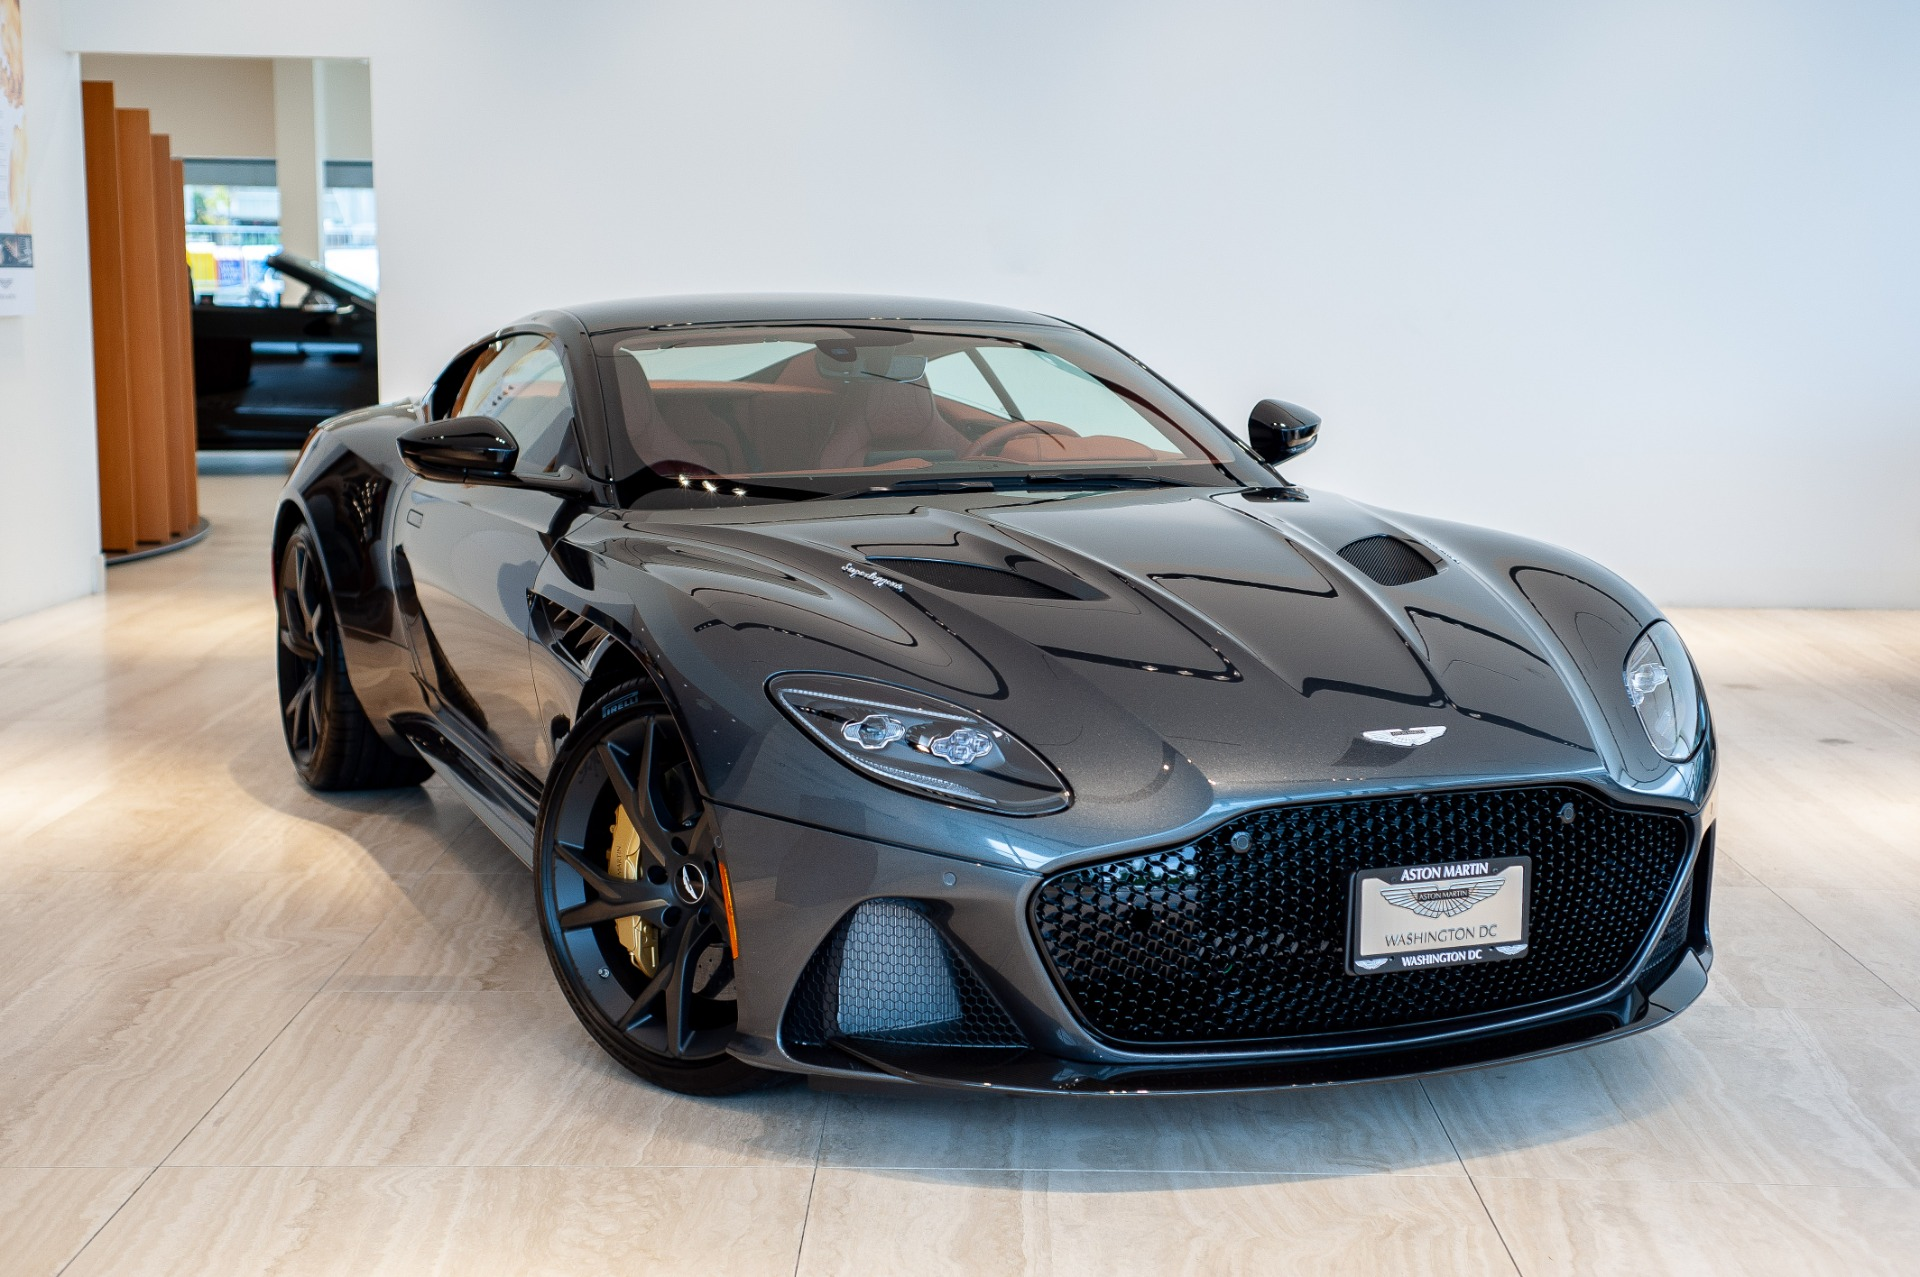 2019 aston martin dbs superleggera stock # 9nr00079 for sale near